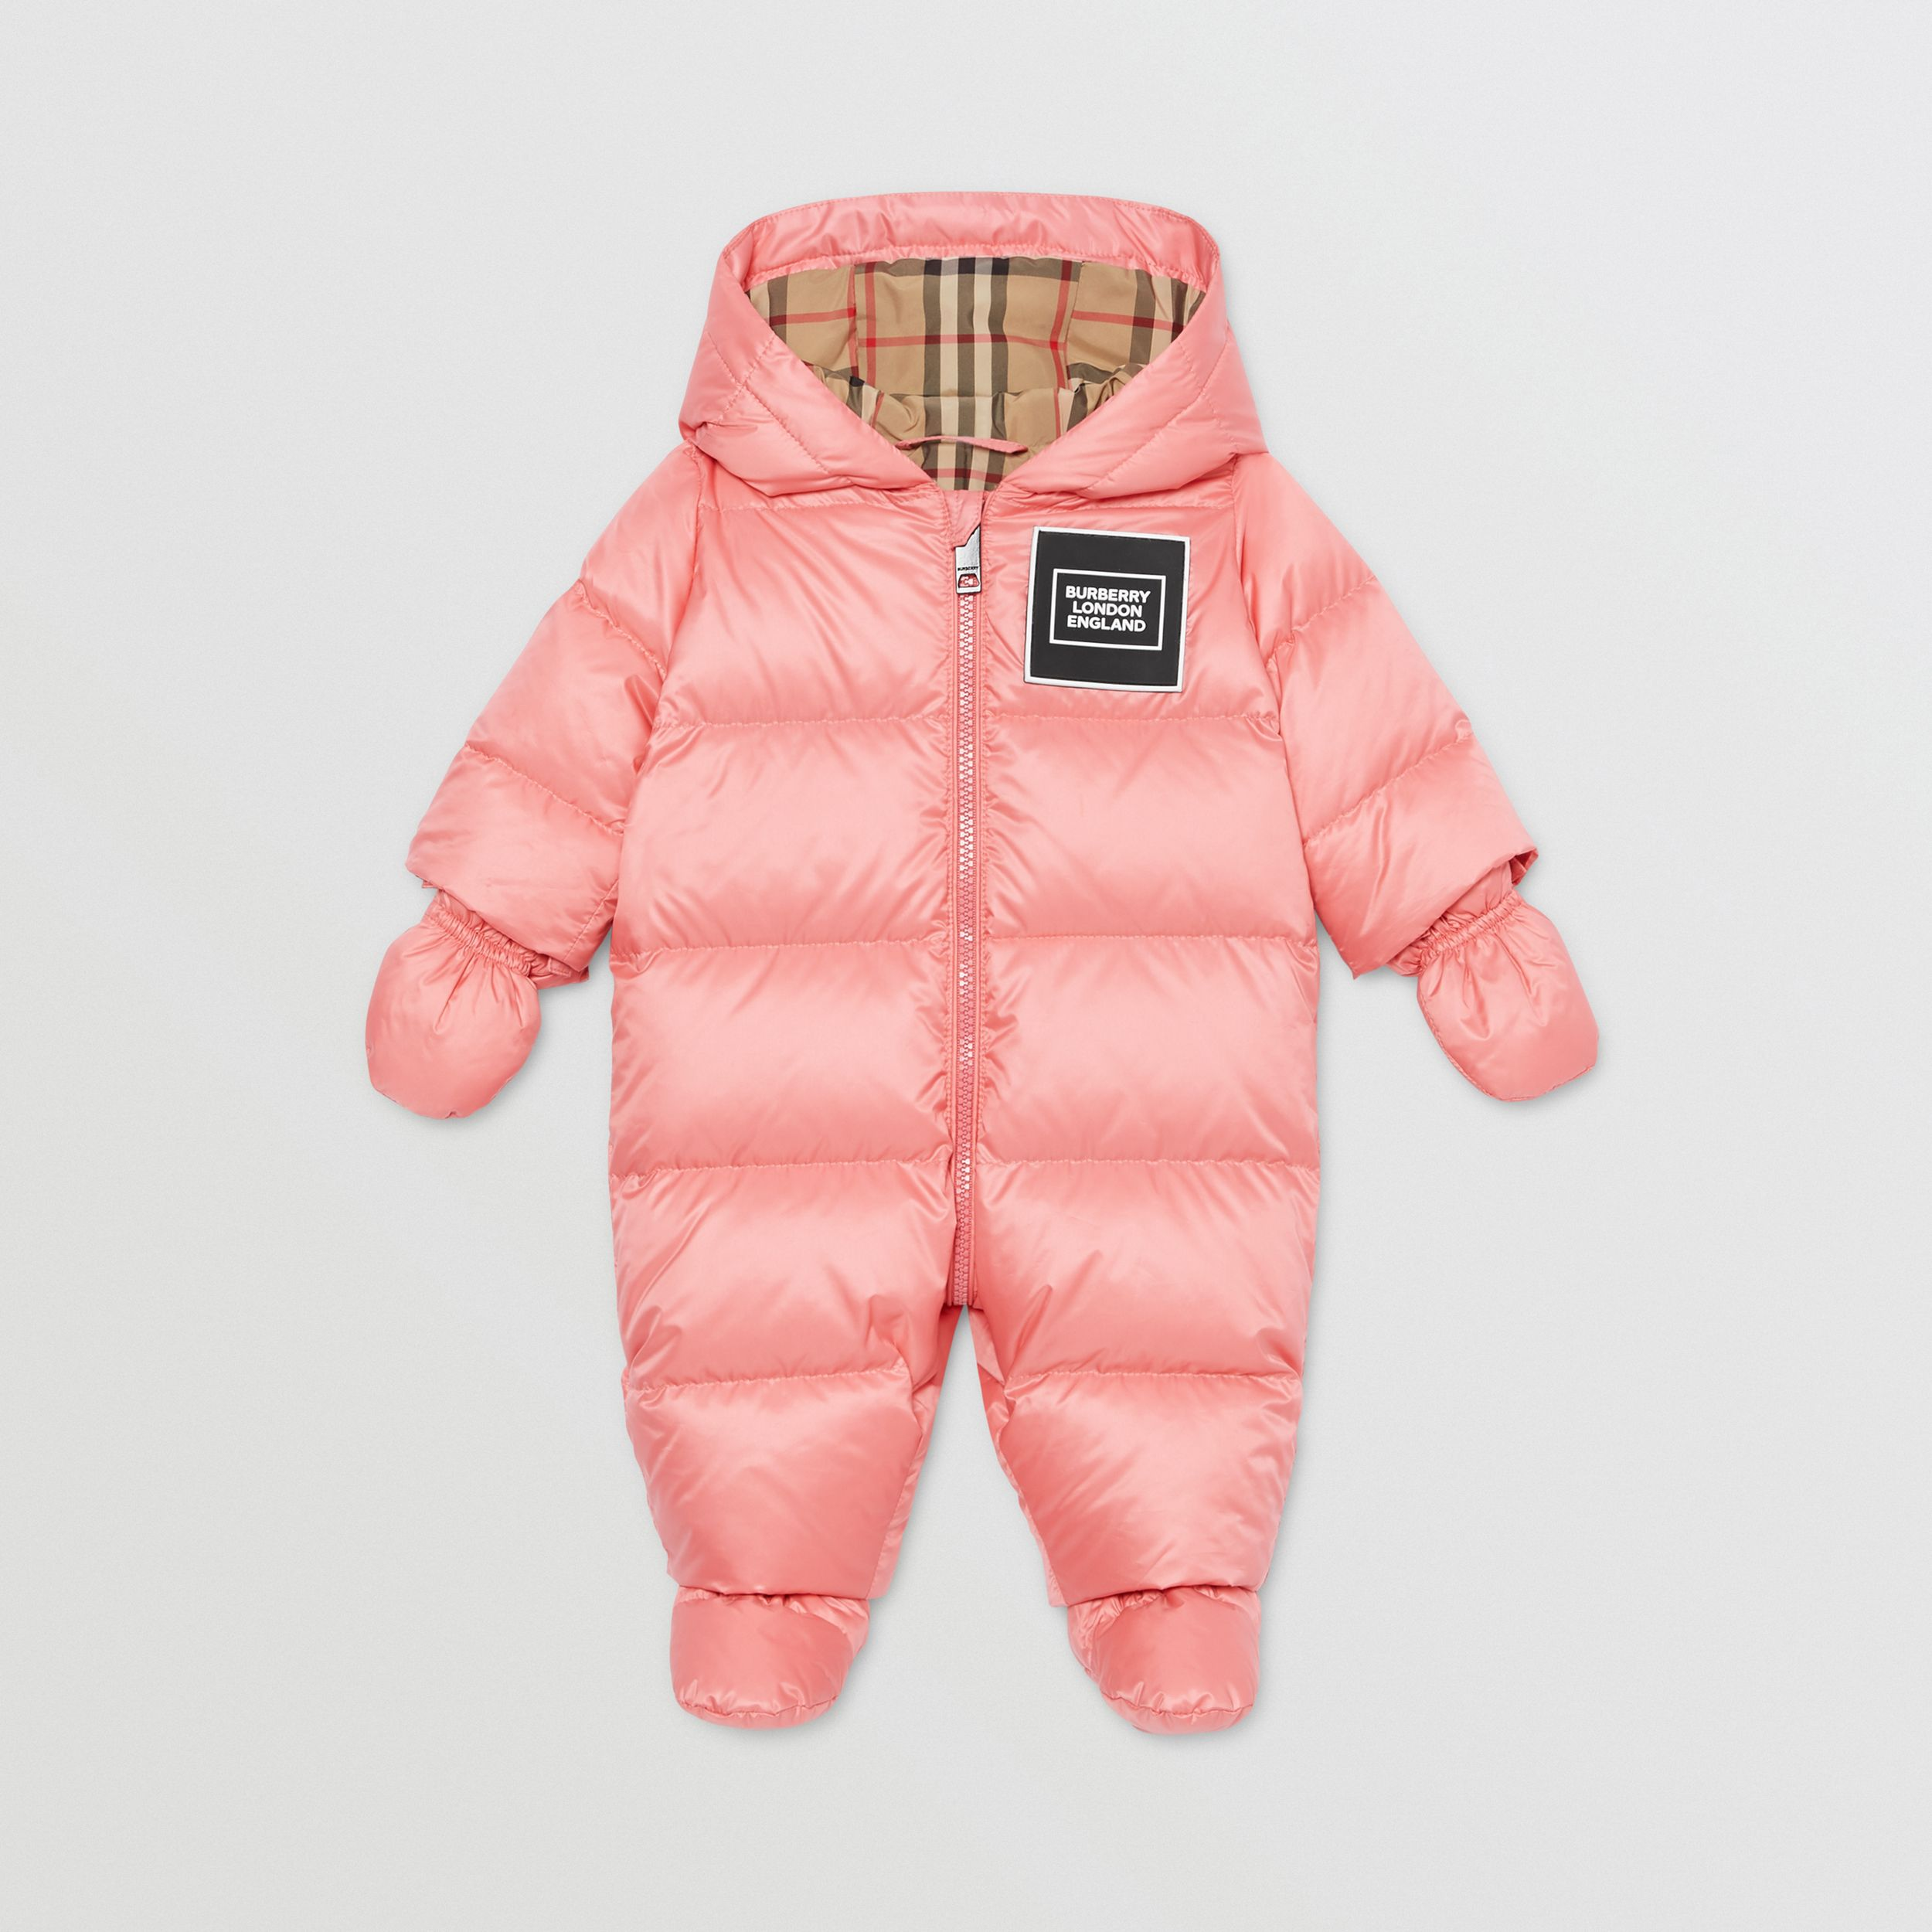 Logo Appliqué Puffer Suit in Peach - Children | Burberry United Kingdom - 1